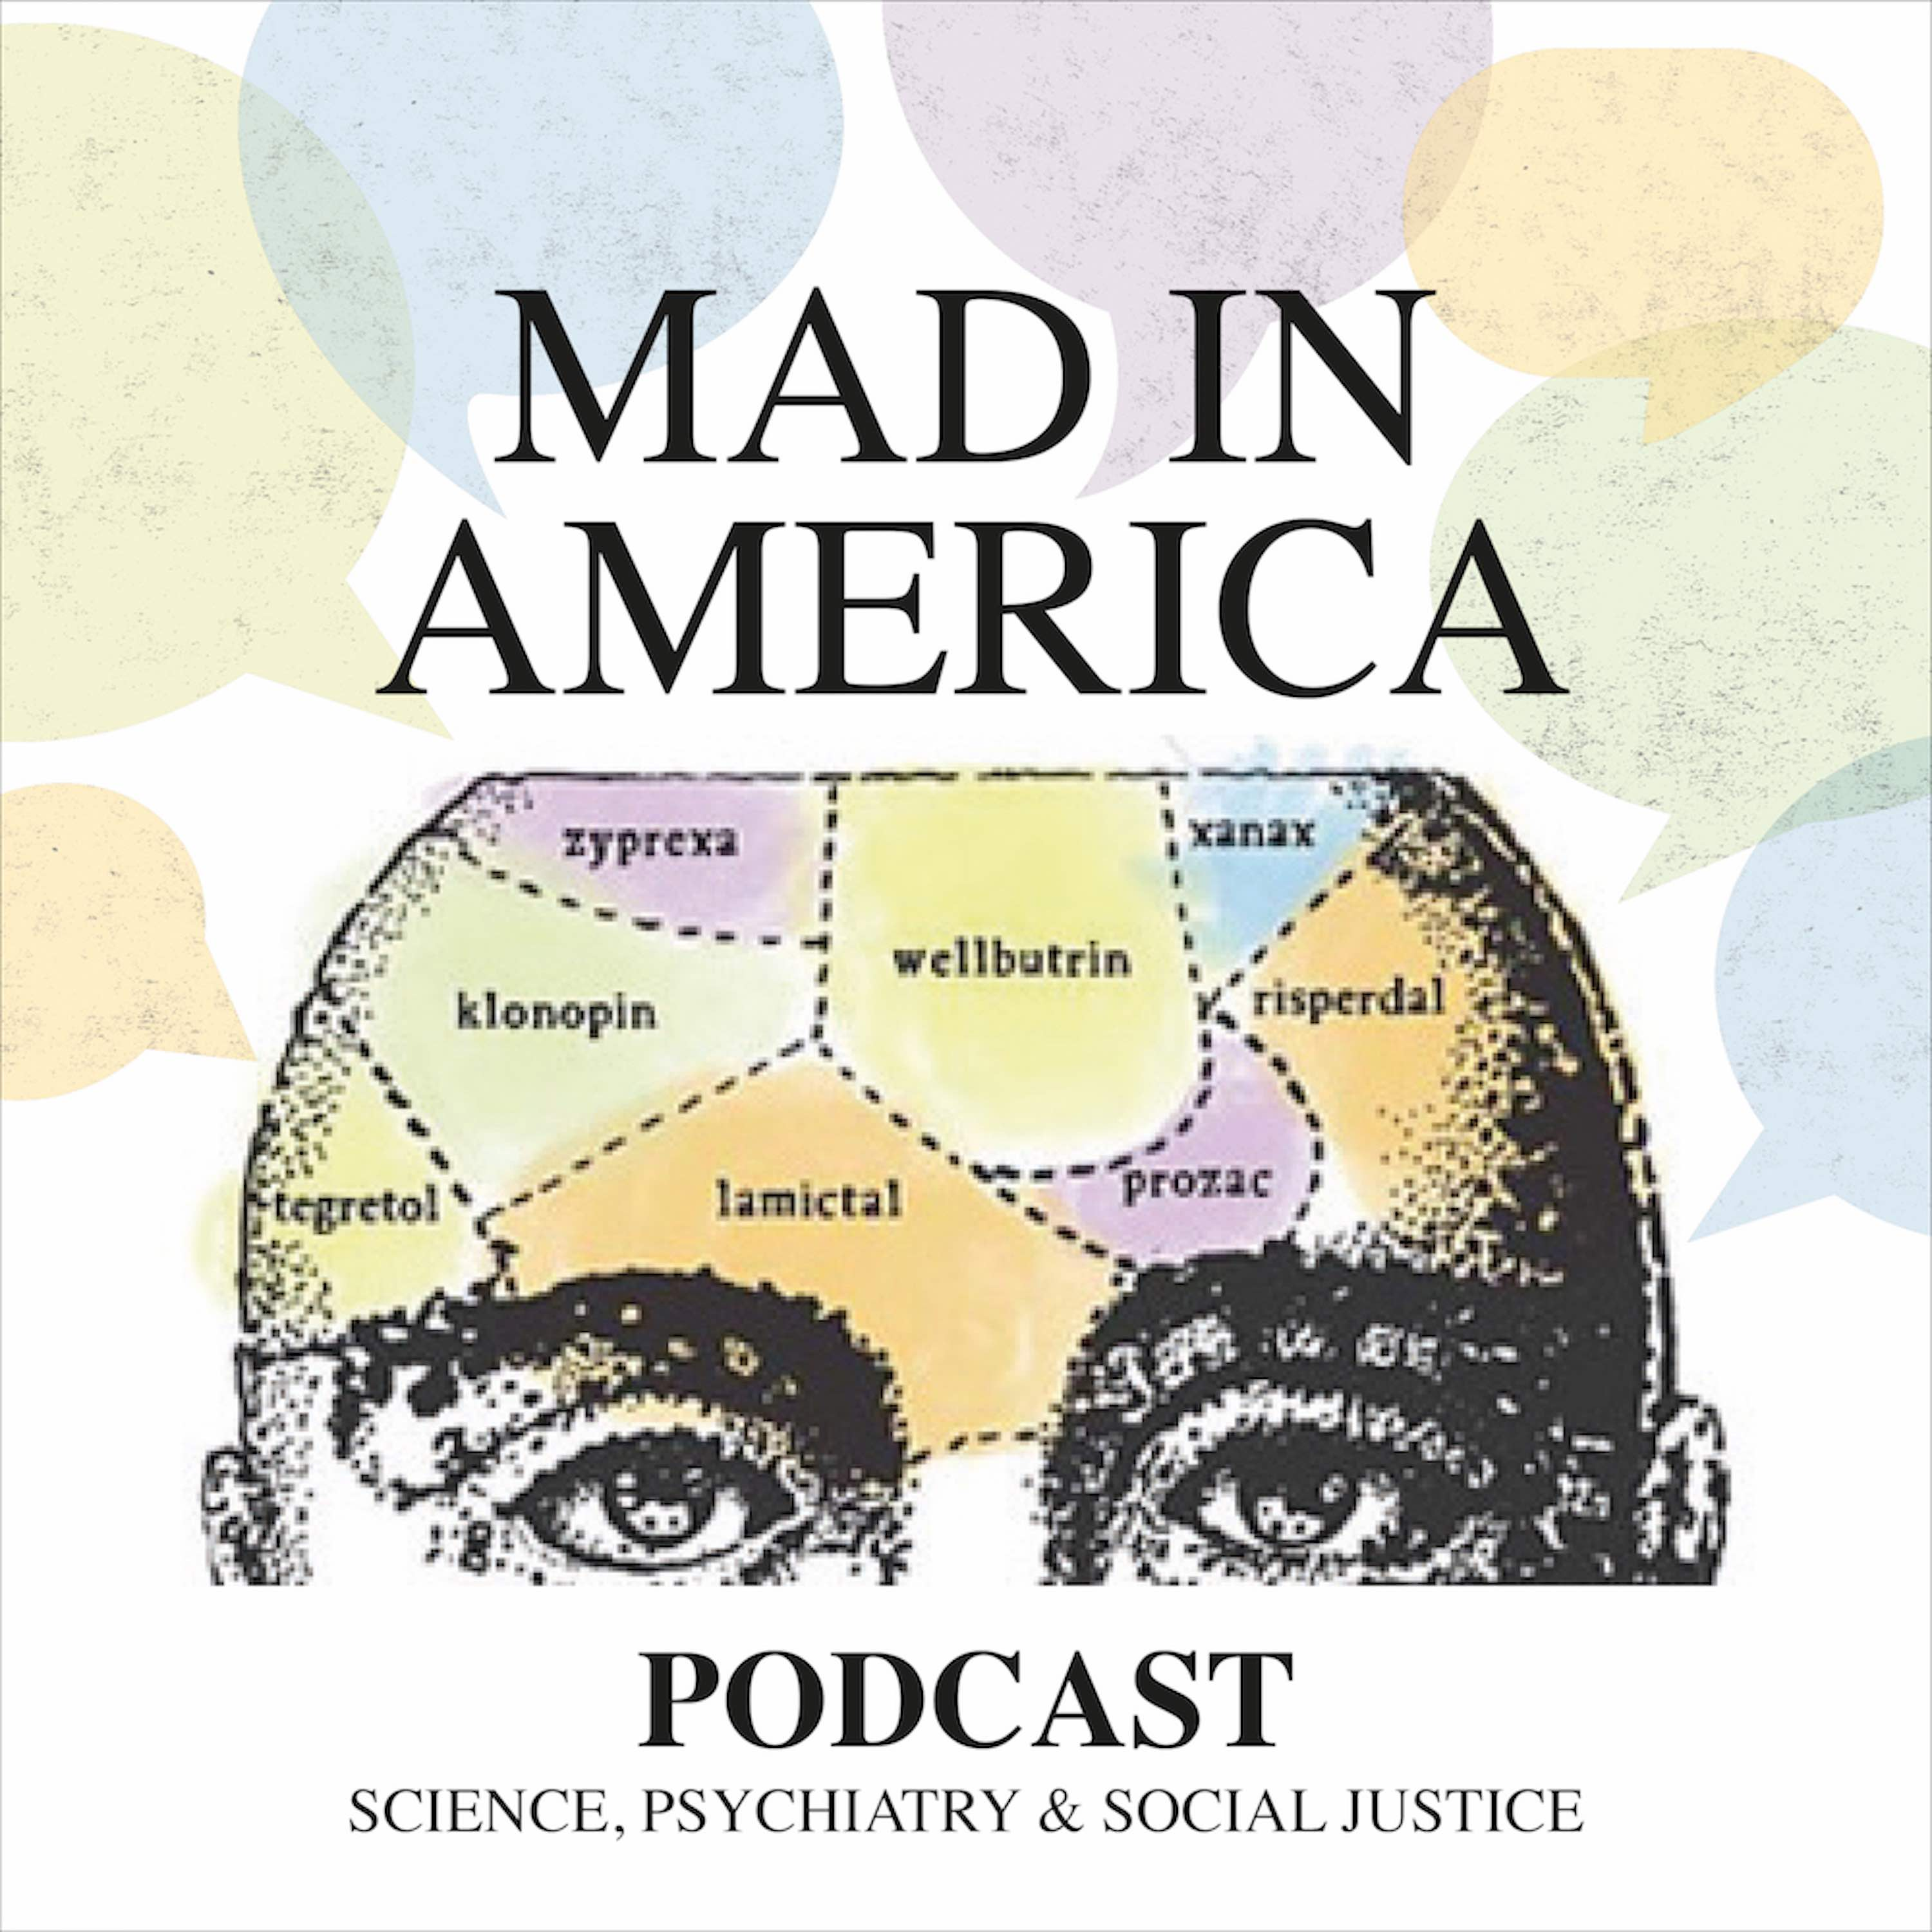 Mad in America: Rethinking Mental Health - Melissa Raven - The Global Mental Health Movement - Cause for Concern